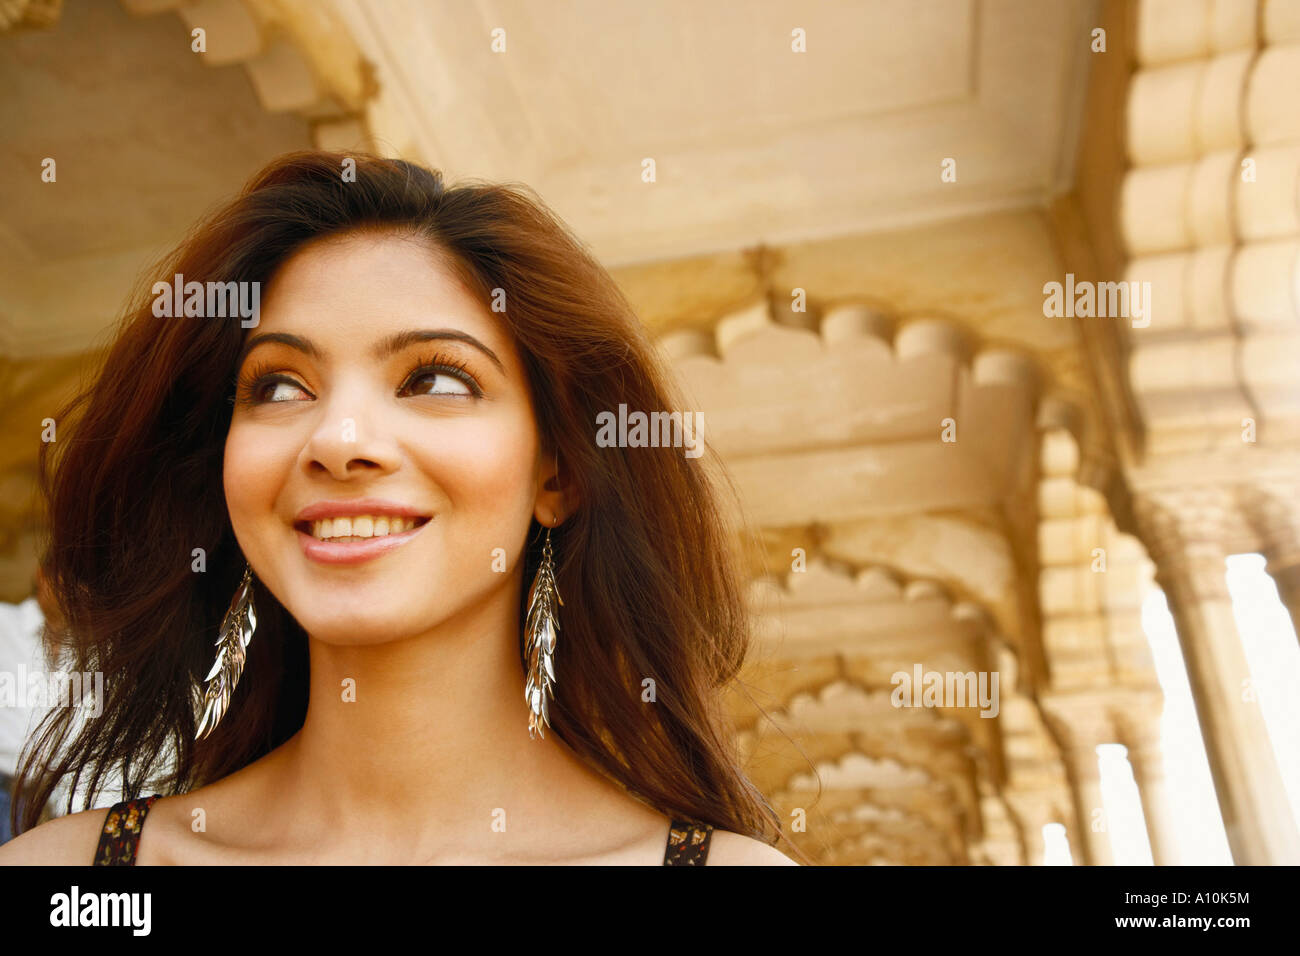 Close-up of a young woman smiling, Agra Fort, Agra, Uttar Pradesh, India Stock Foto